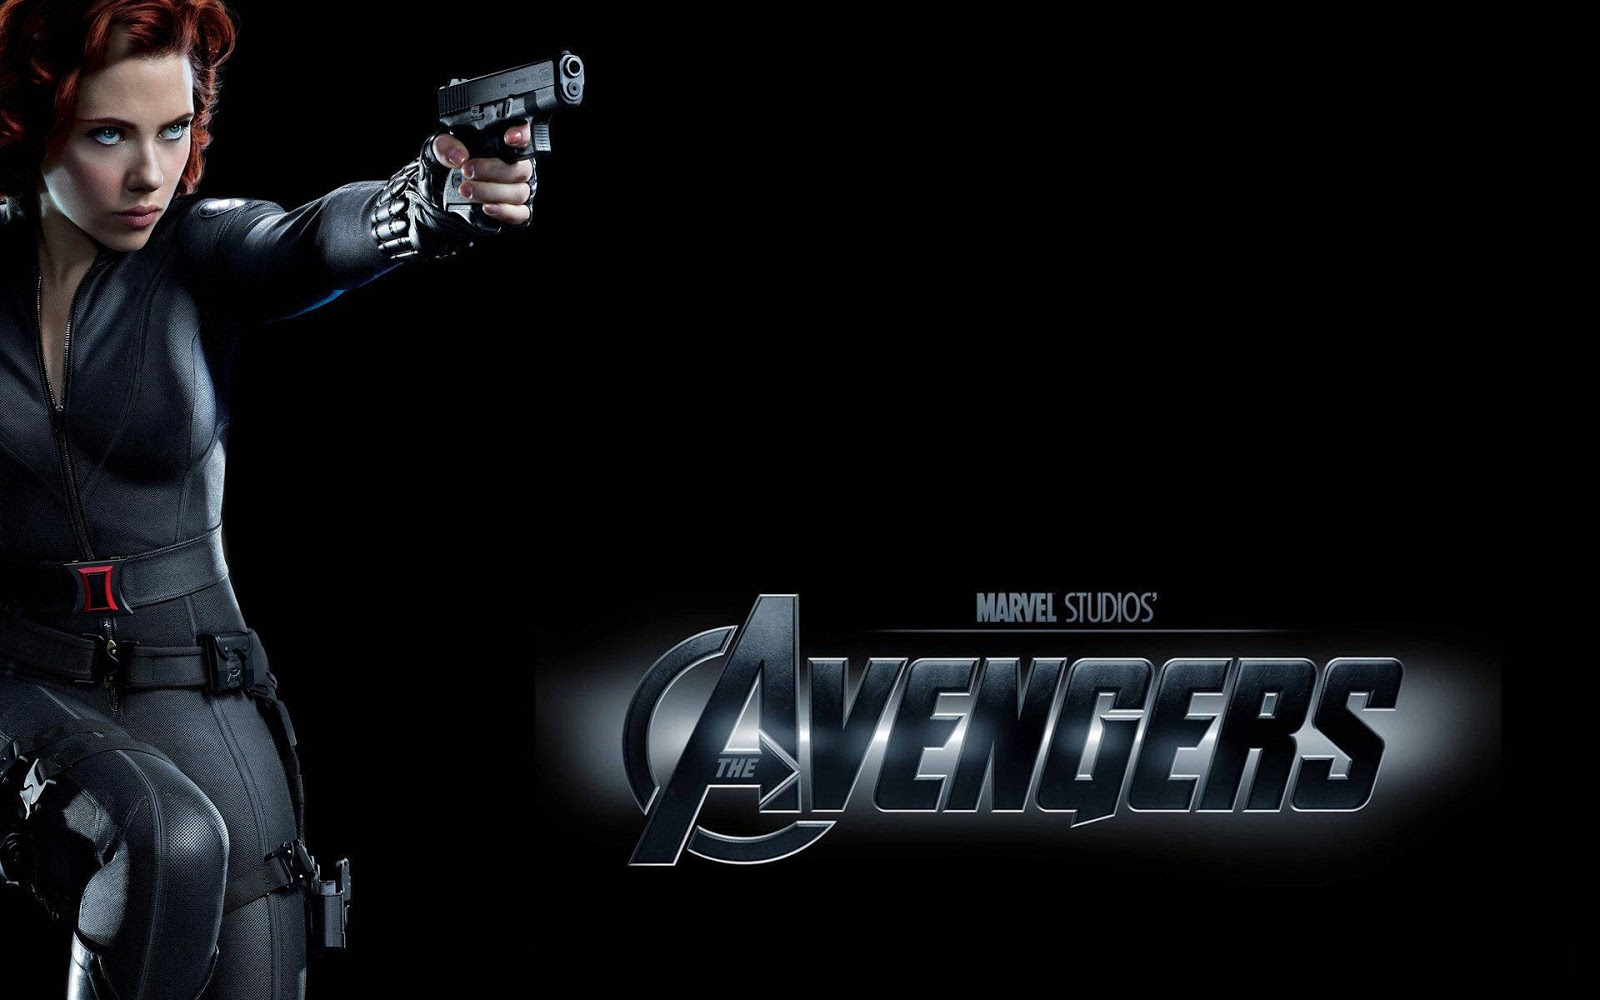 Scarlett Johansson As Black Widow The Avengers Wallpaper HD